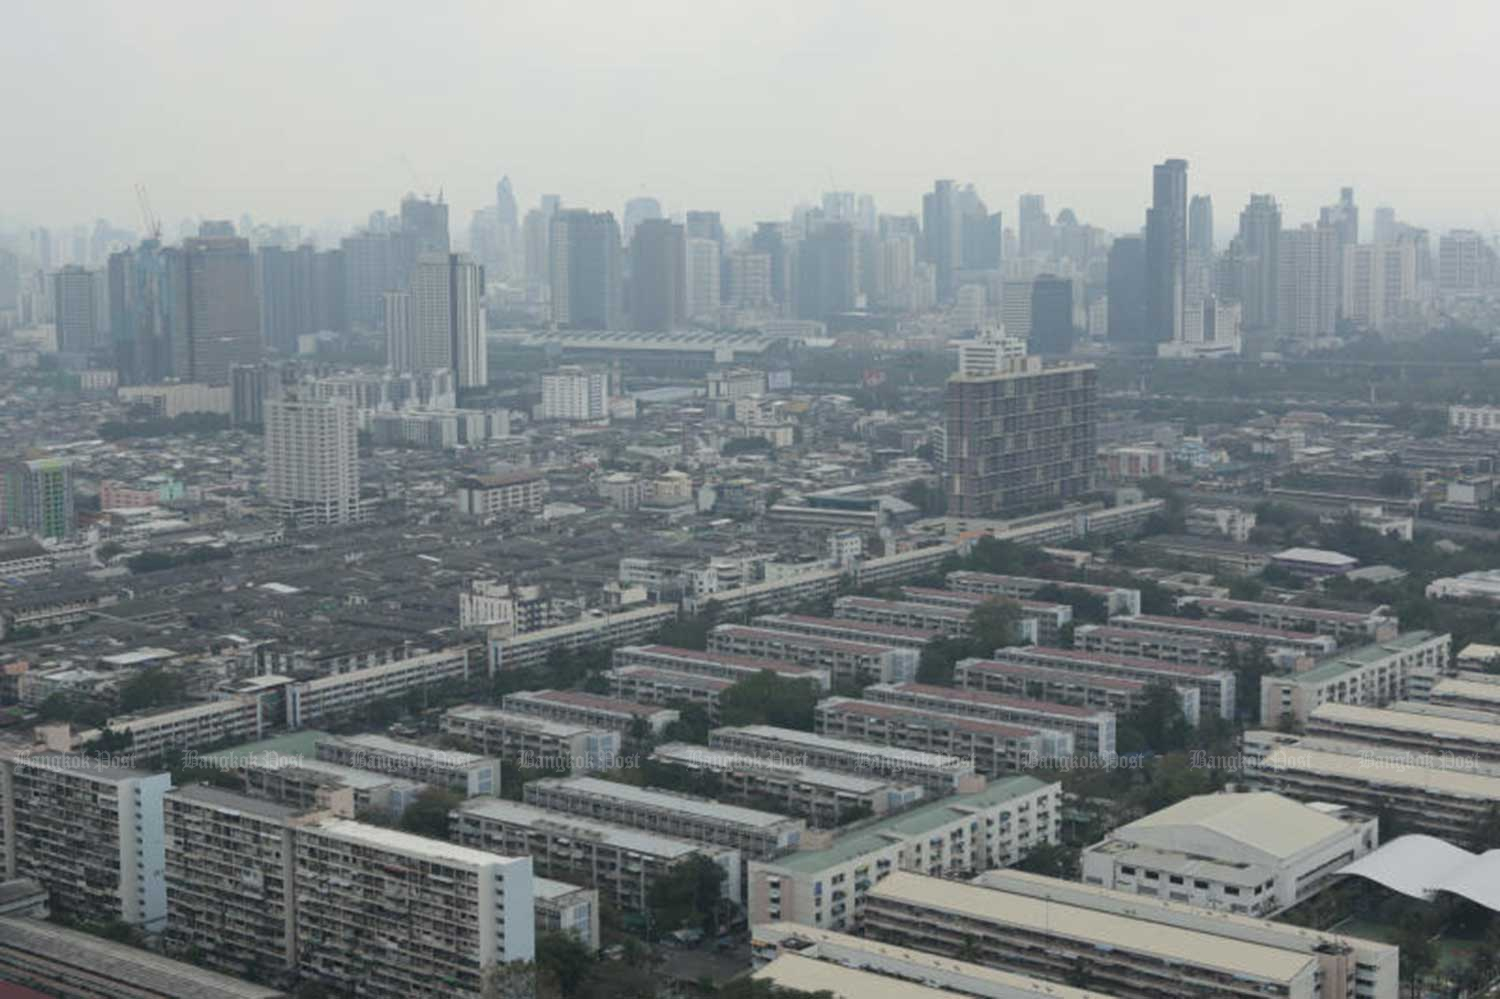 The levels of fine PM2.5 dust particles still exceed safe limits in many areas of Bangkok and surrounding provinces, as well as in the North. (File photo)